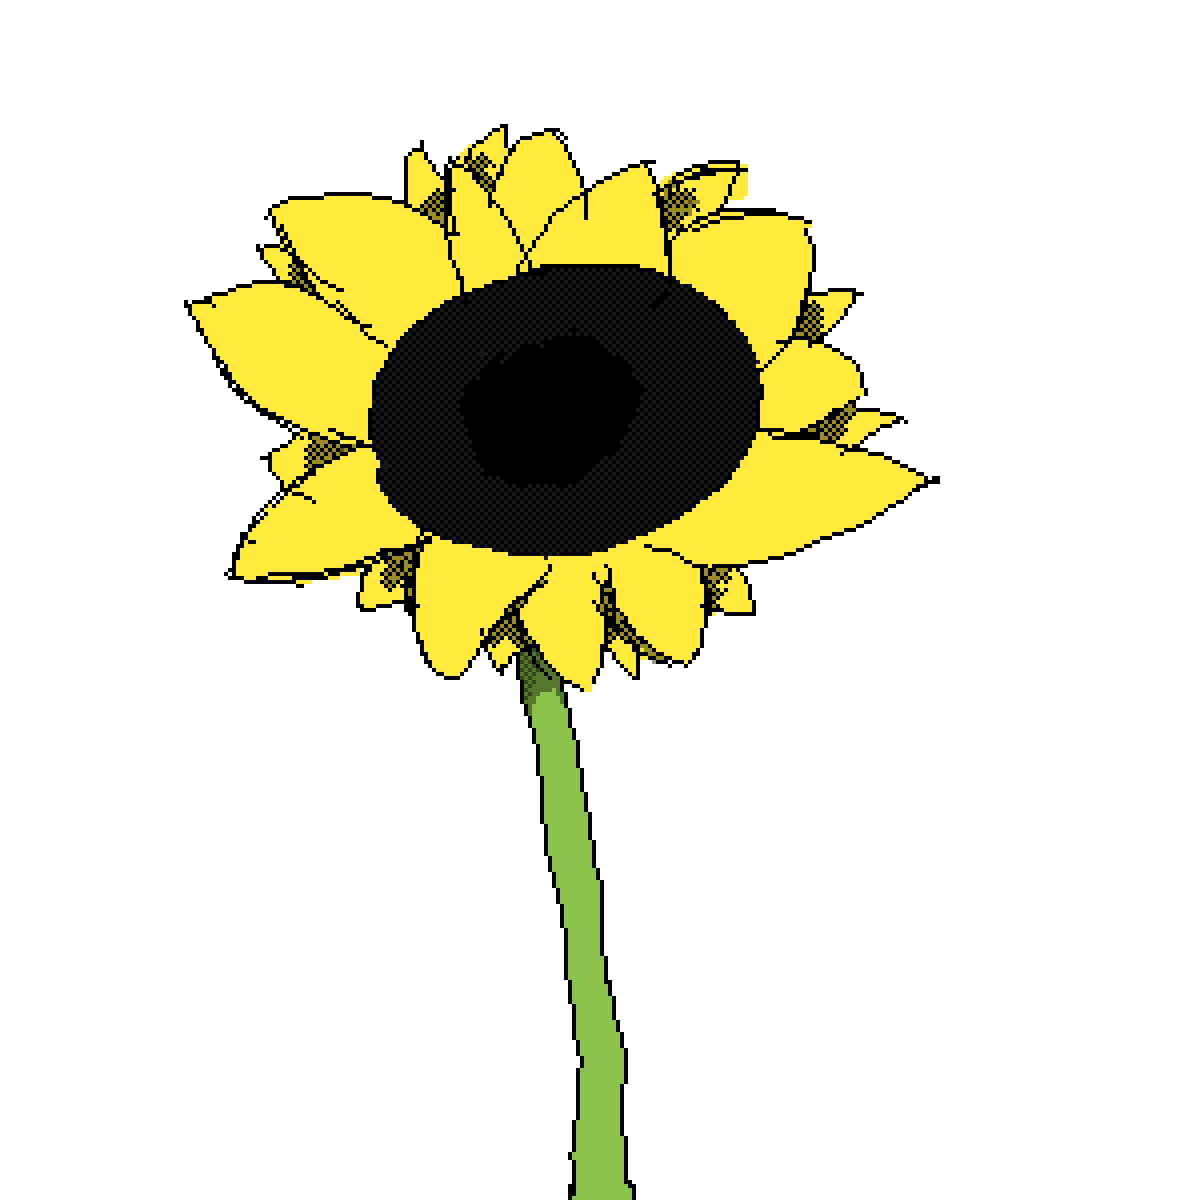 Sunflower by mehdude